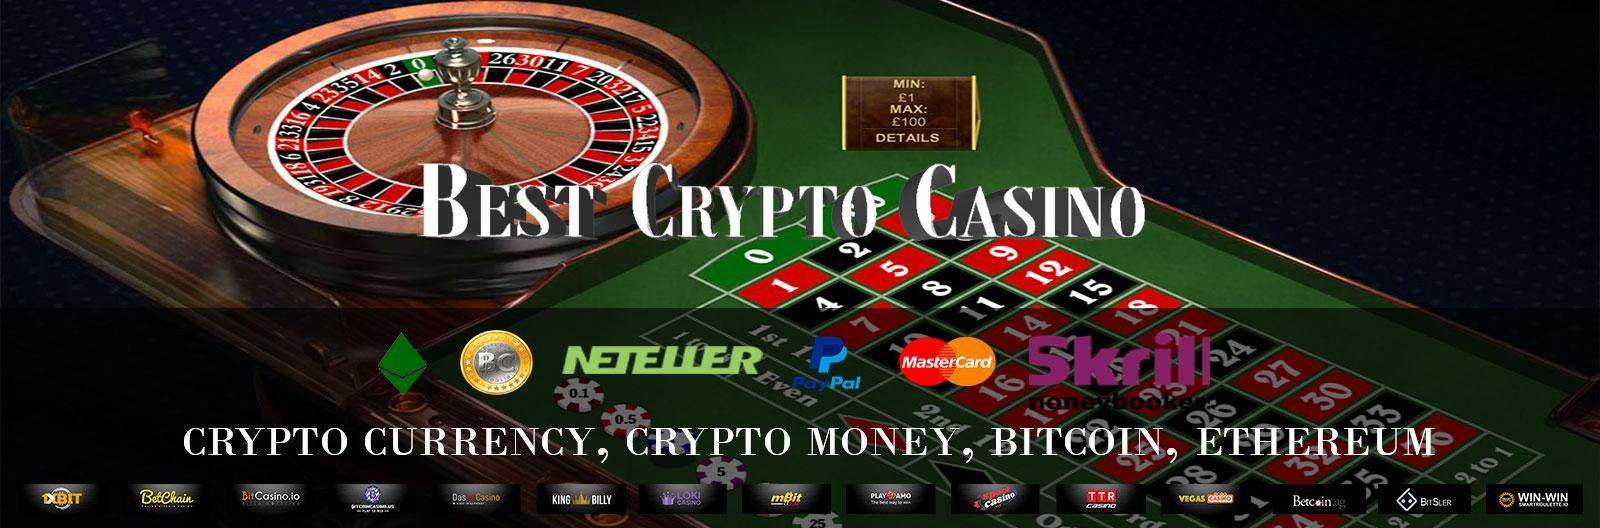 Online bitcoin casino with best odds